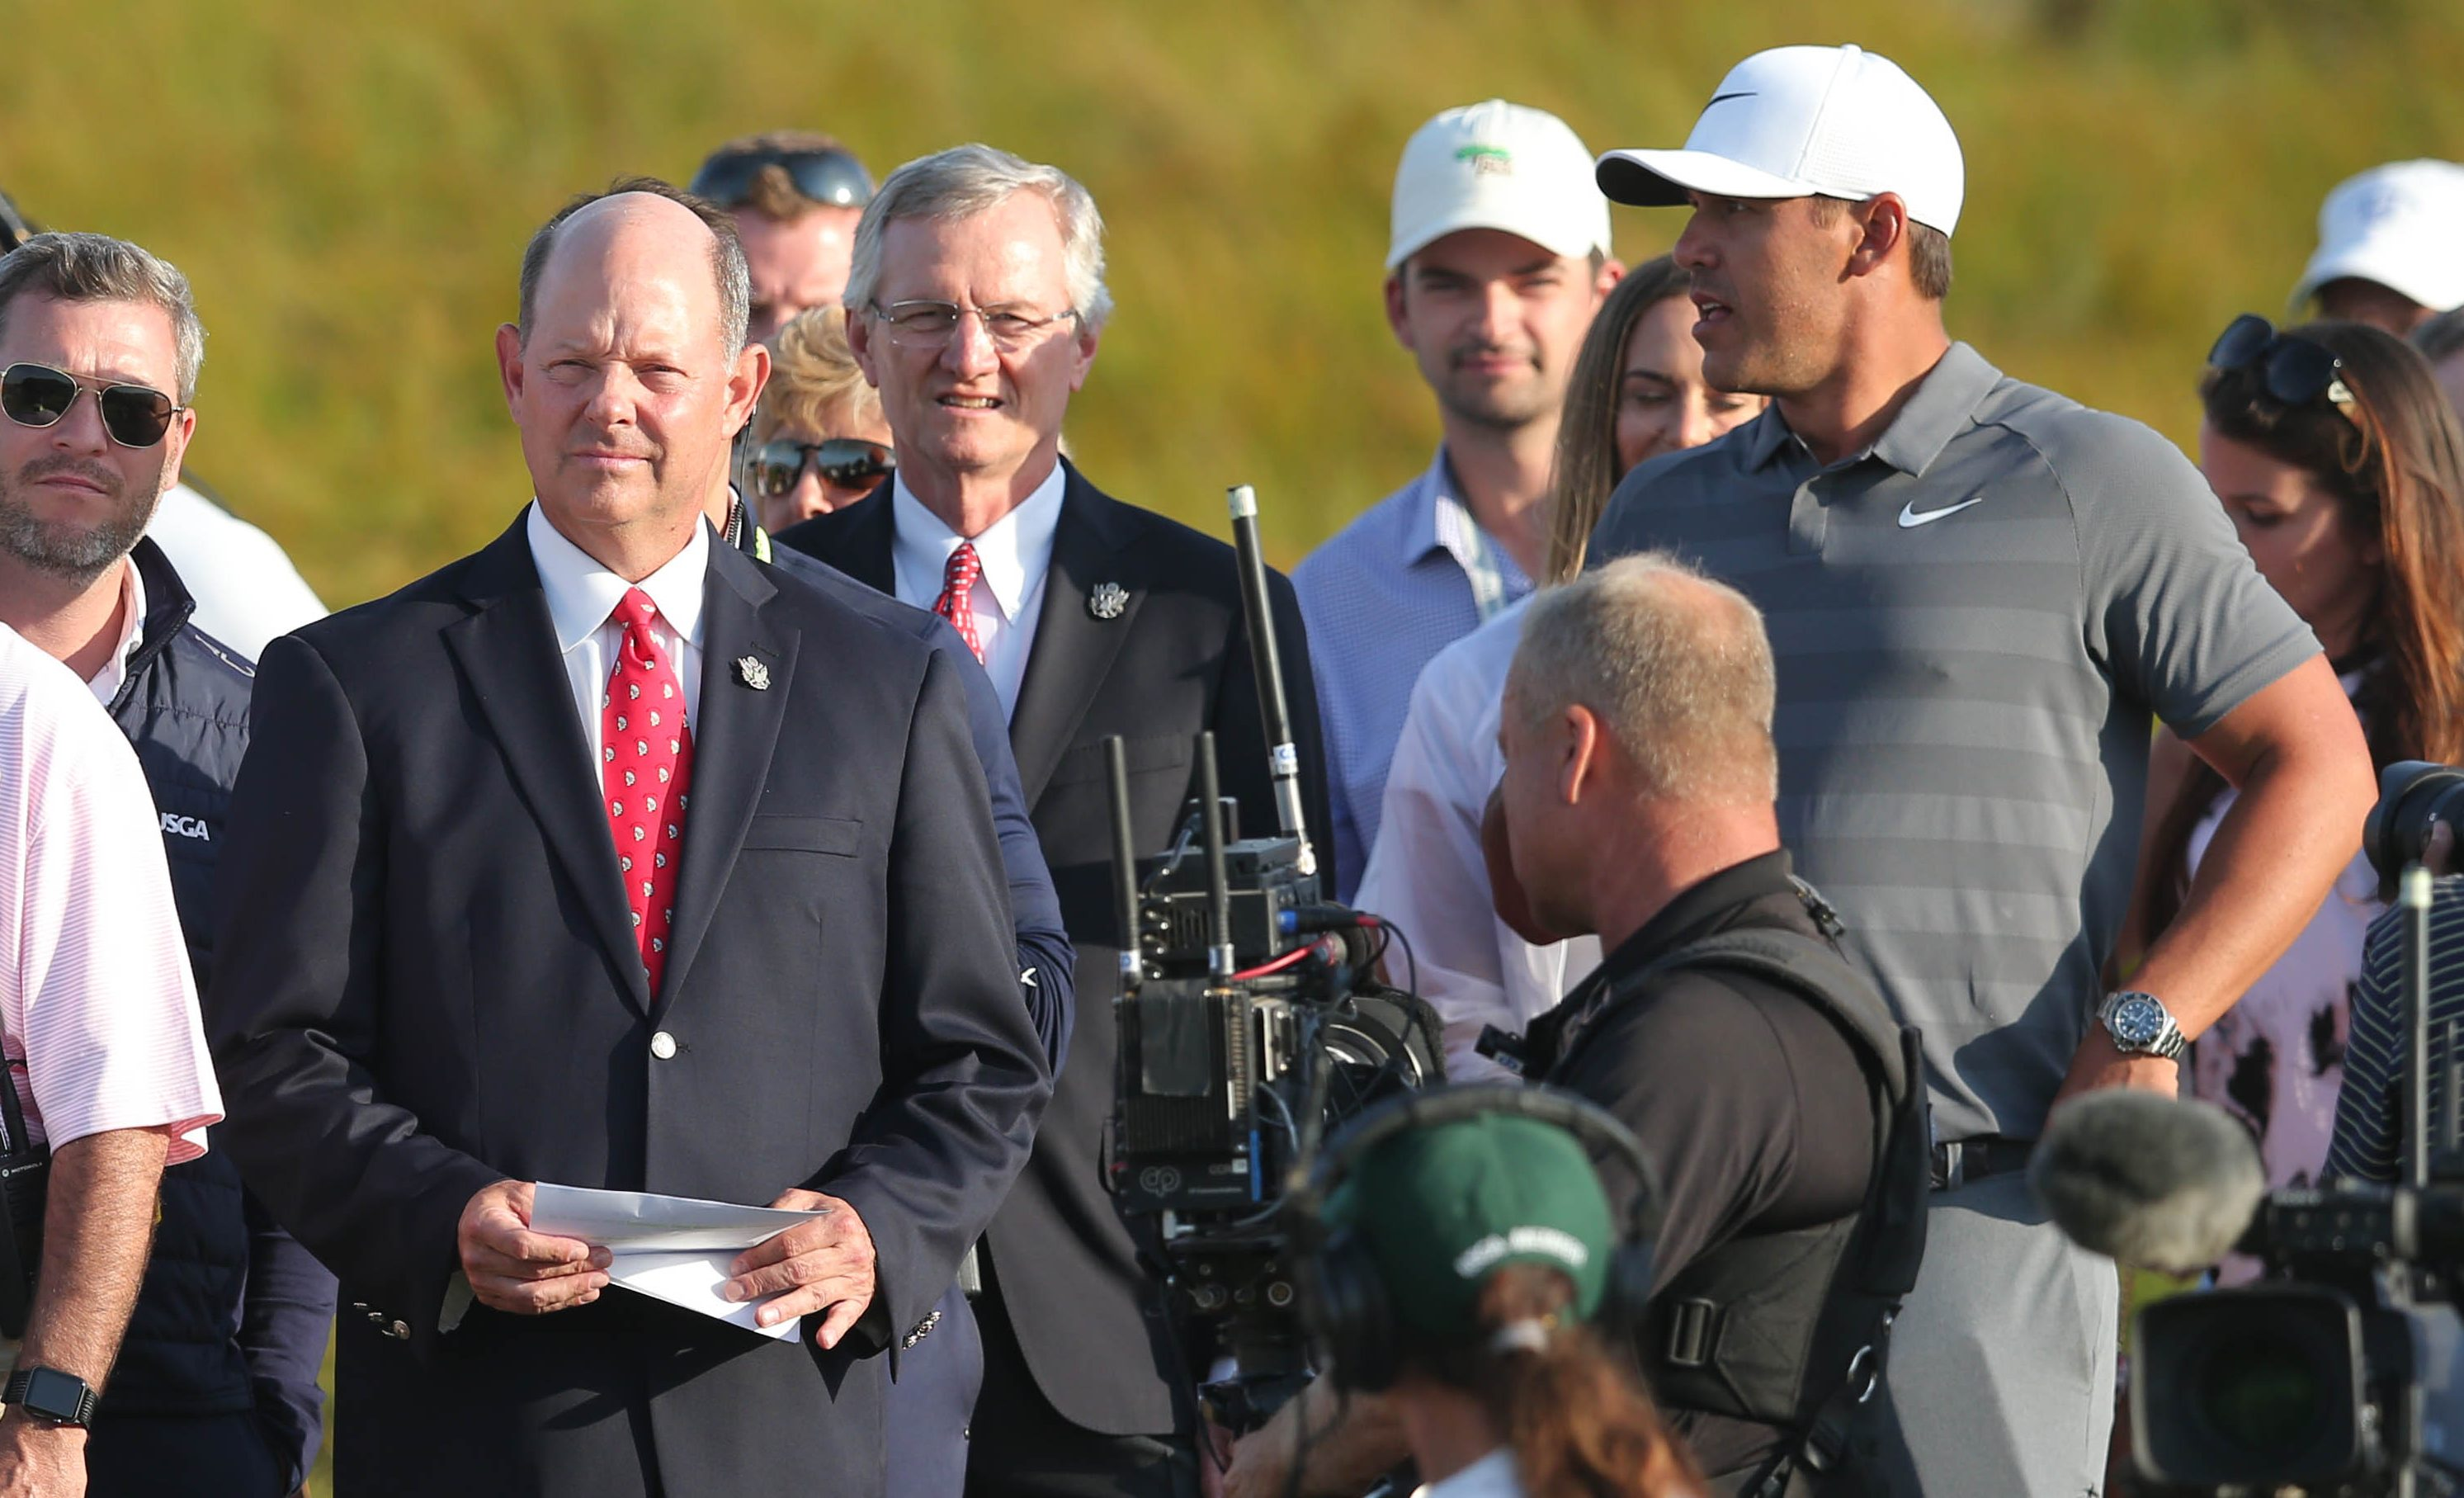 Jun 17, 2018; Southampton, NY, USA; USGA executive director Mike Davis and Brooks Koepka arrive on the eighteenth green for the trophy presentation after the final round of the U.S. Open golf tournament at Shinnecock Hills GC - Shinnecock Hills Golf C. Mandatory Credit: Brad Penner-USA TODAY Sports